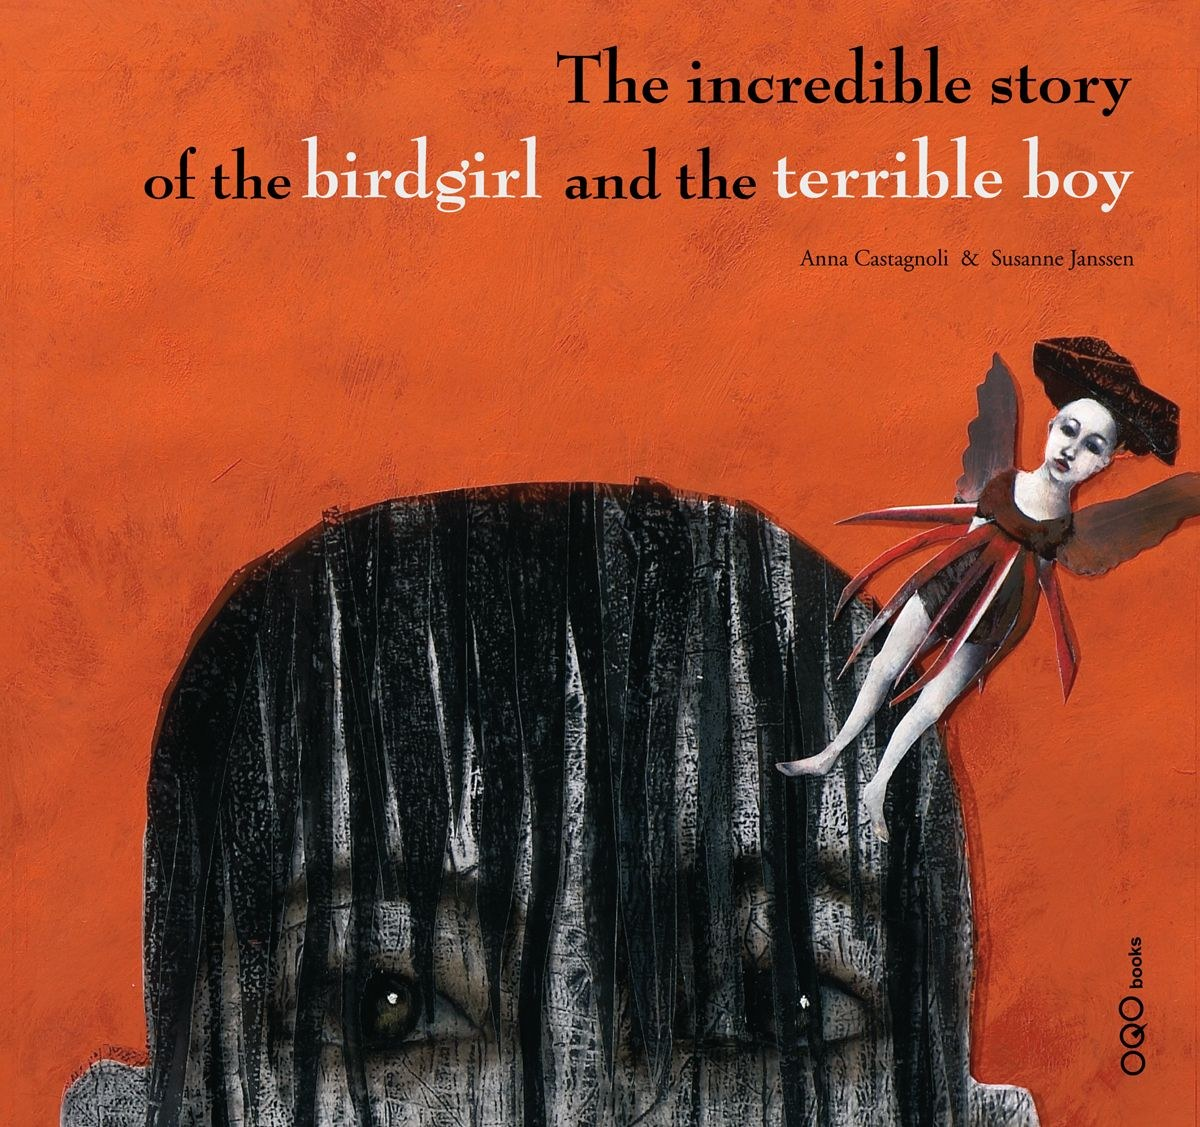 The incredible story of the terrible boy